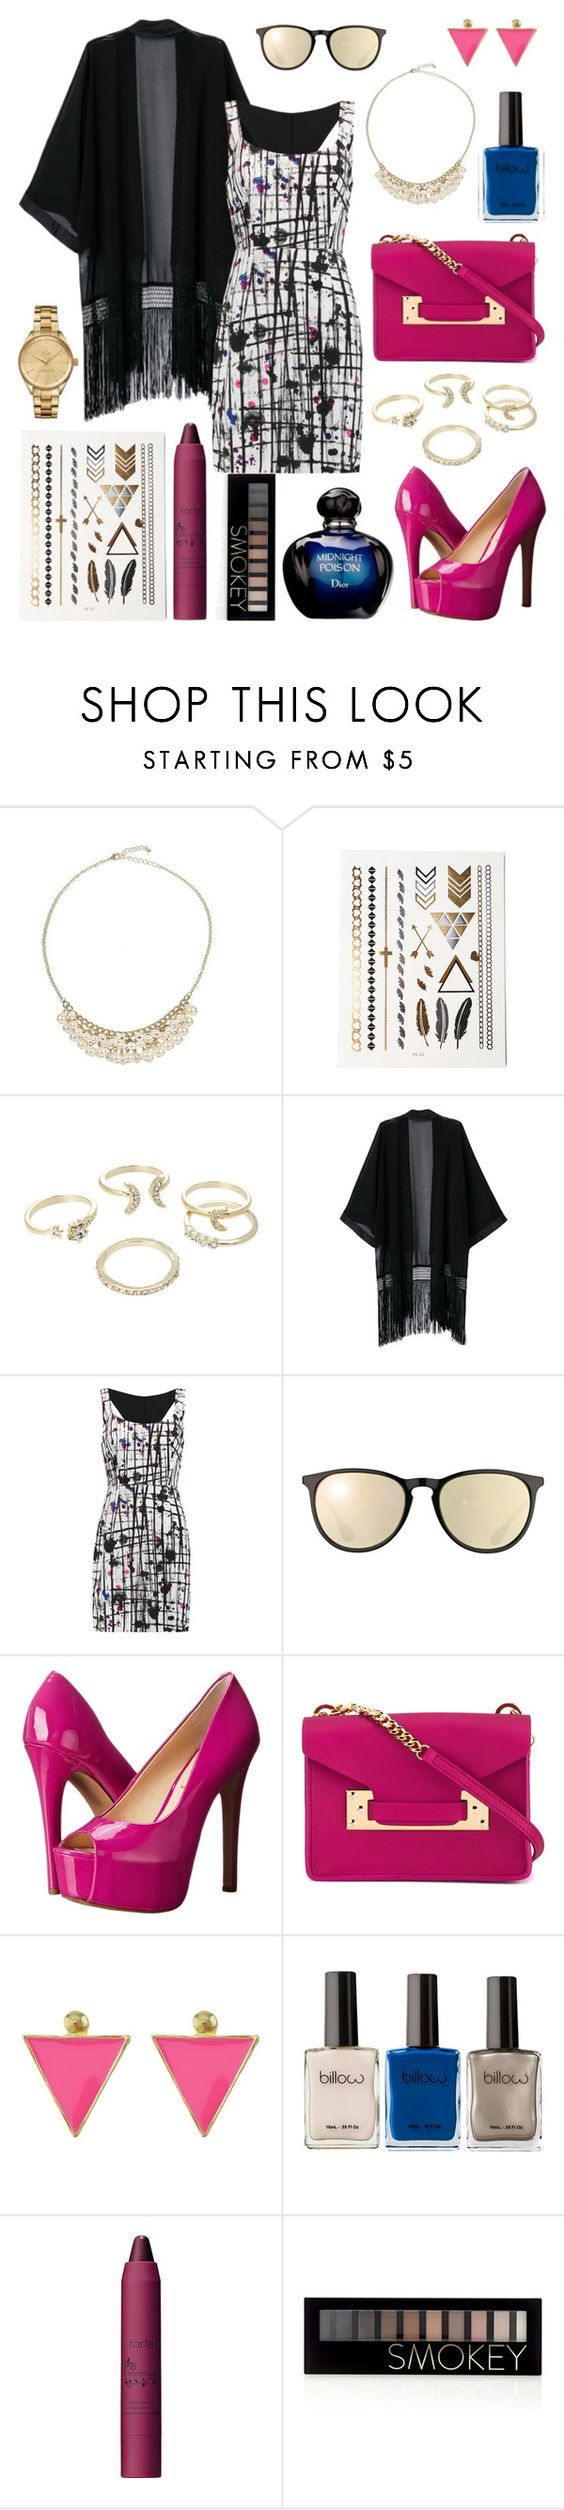 """""""Untitled #266"""" by angelicaaans ❤ liked on Polyvore featuring Christian Dior, Lipsy, Milly, Ray-Ban, Jessica Simpson, Sophie Hulme, tarte, Forever 21 and Lacoste"""